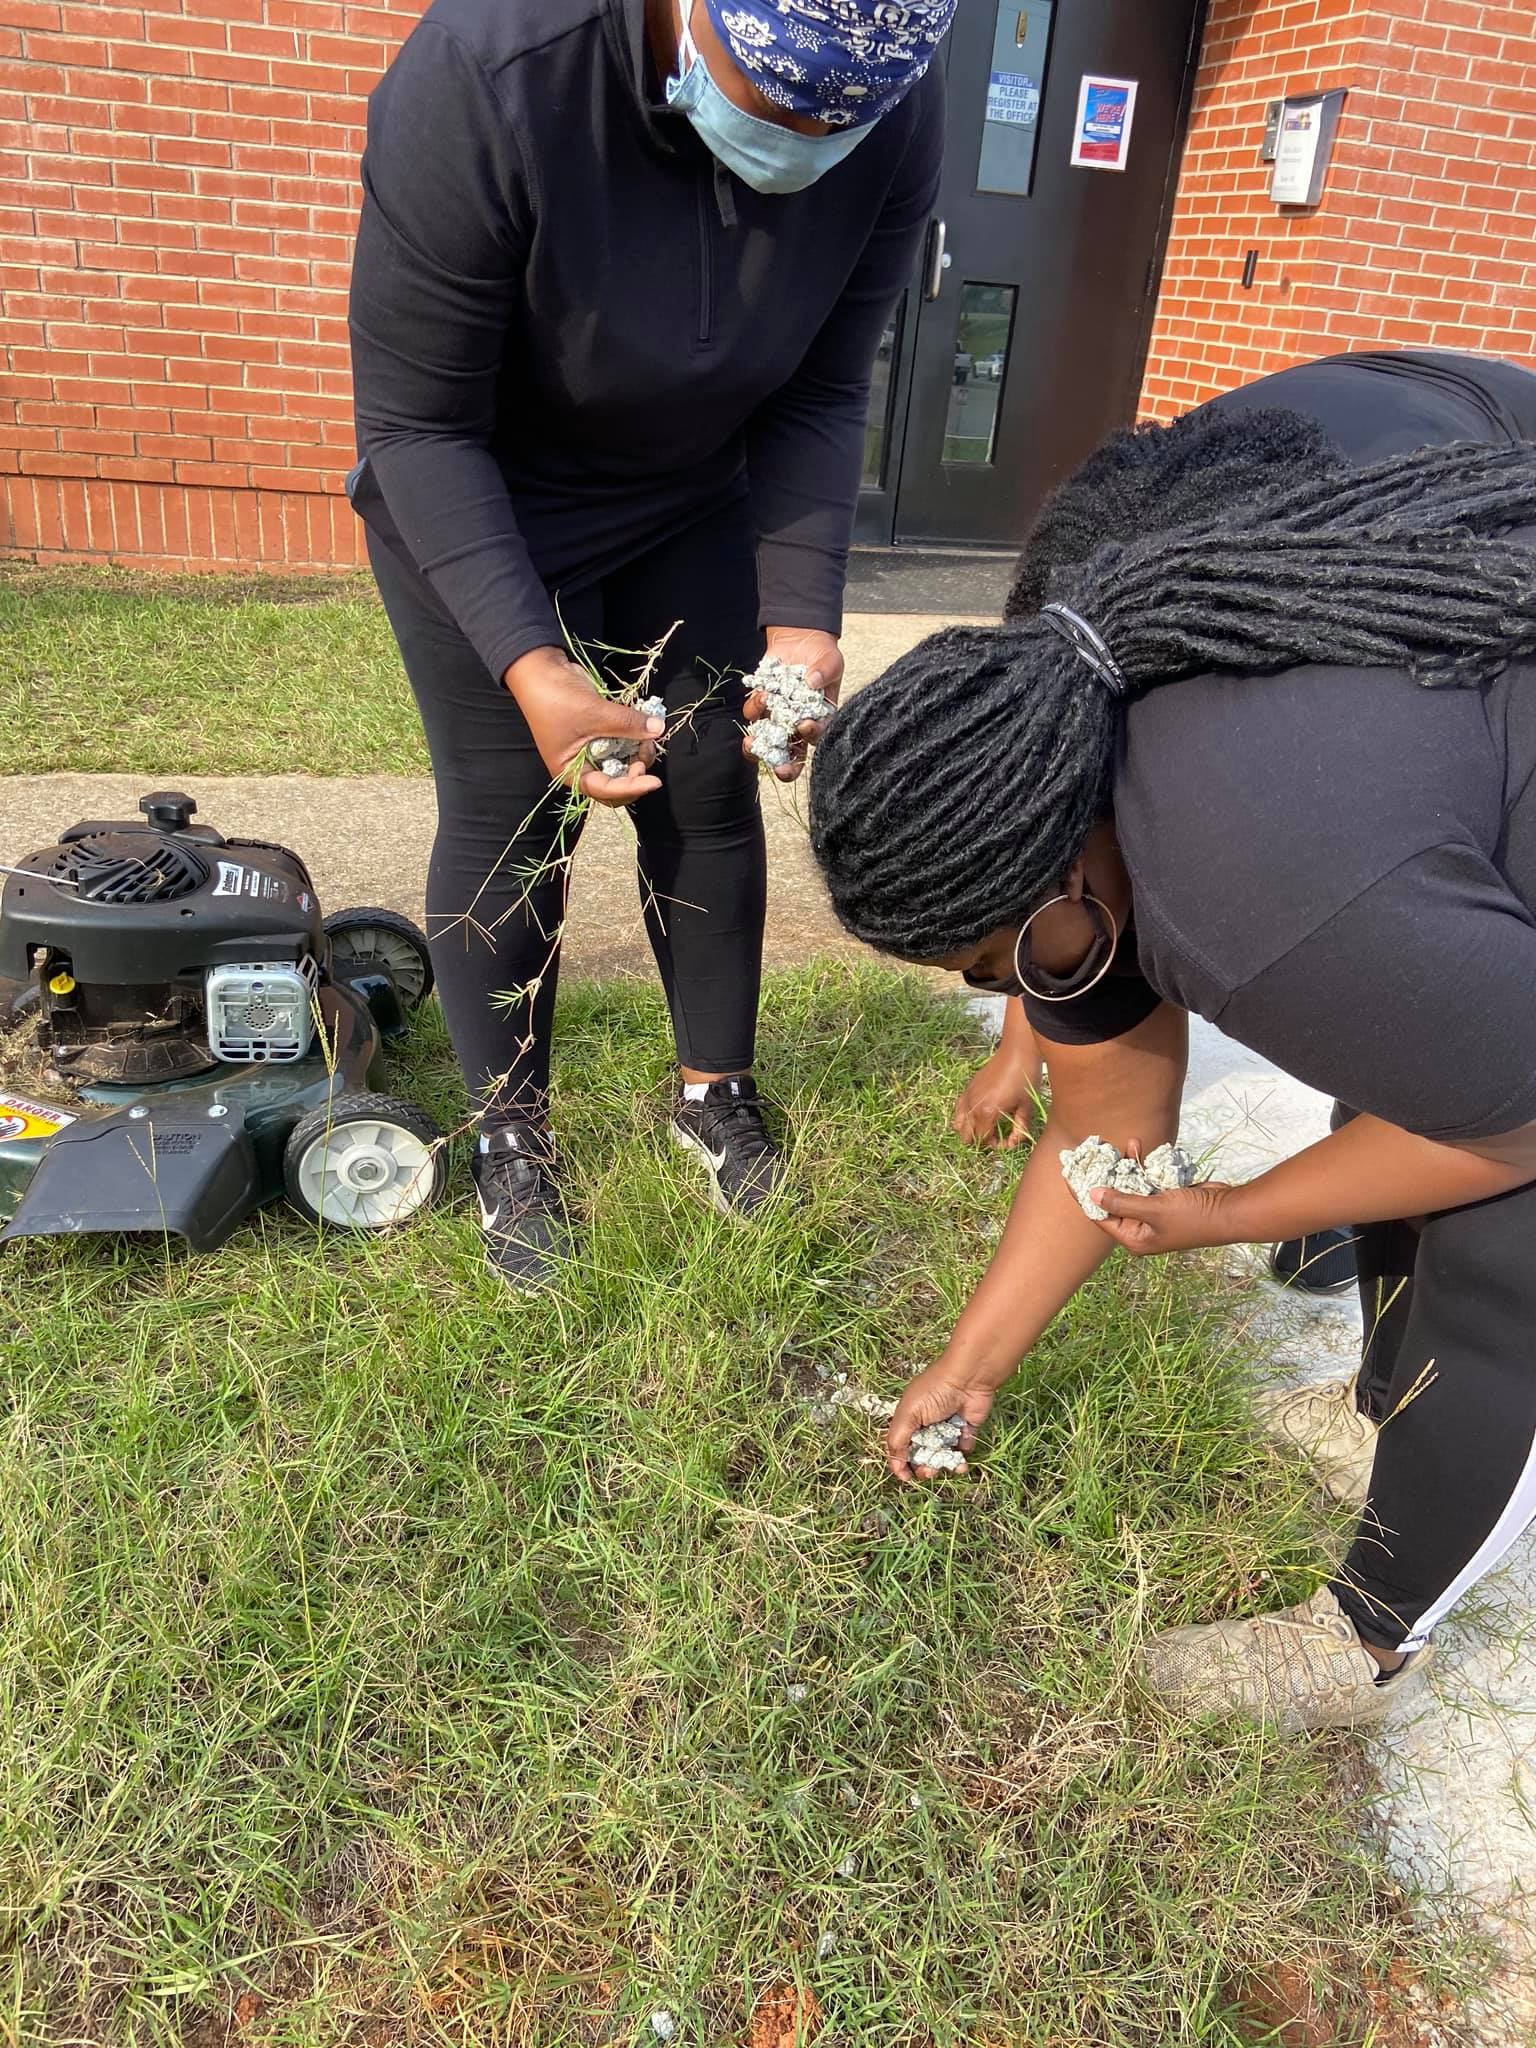 Ms. Starling and Jones clearing the grass of rocks and other debris to cut the grasss.